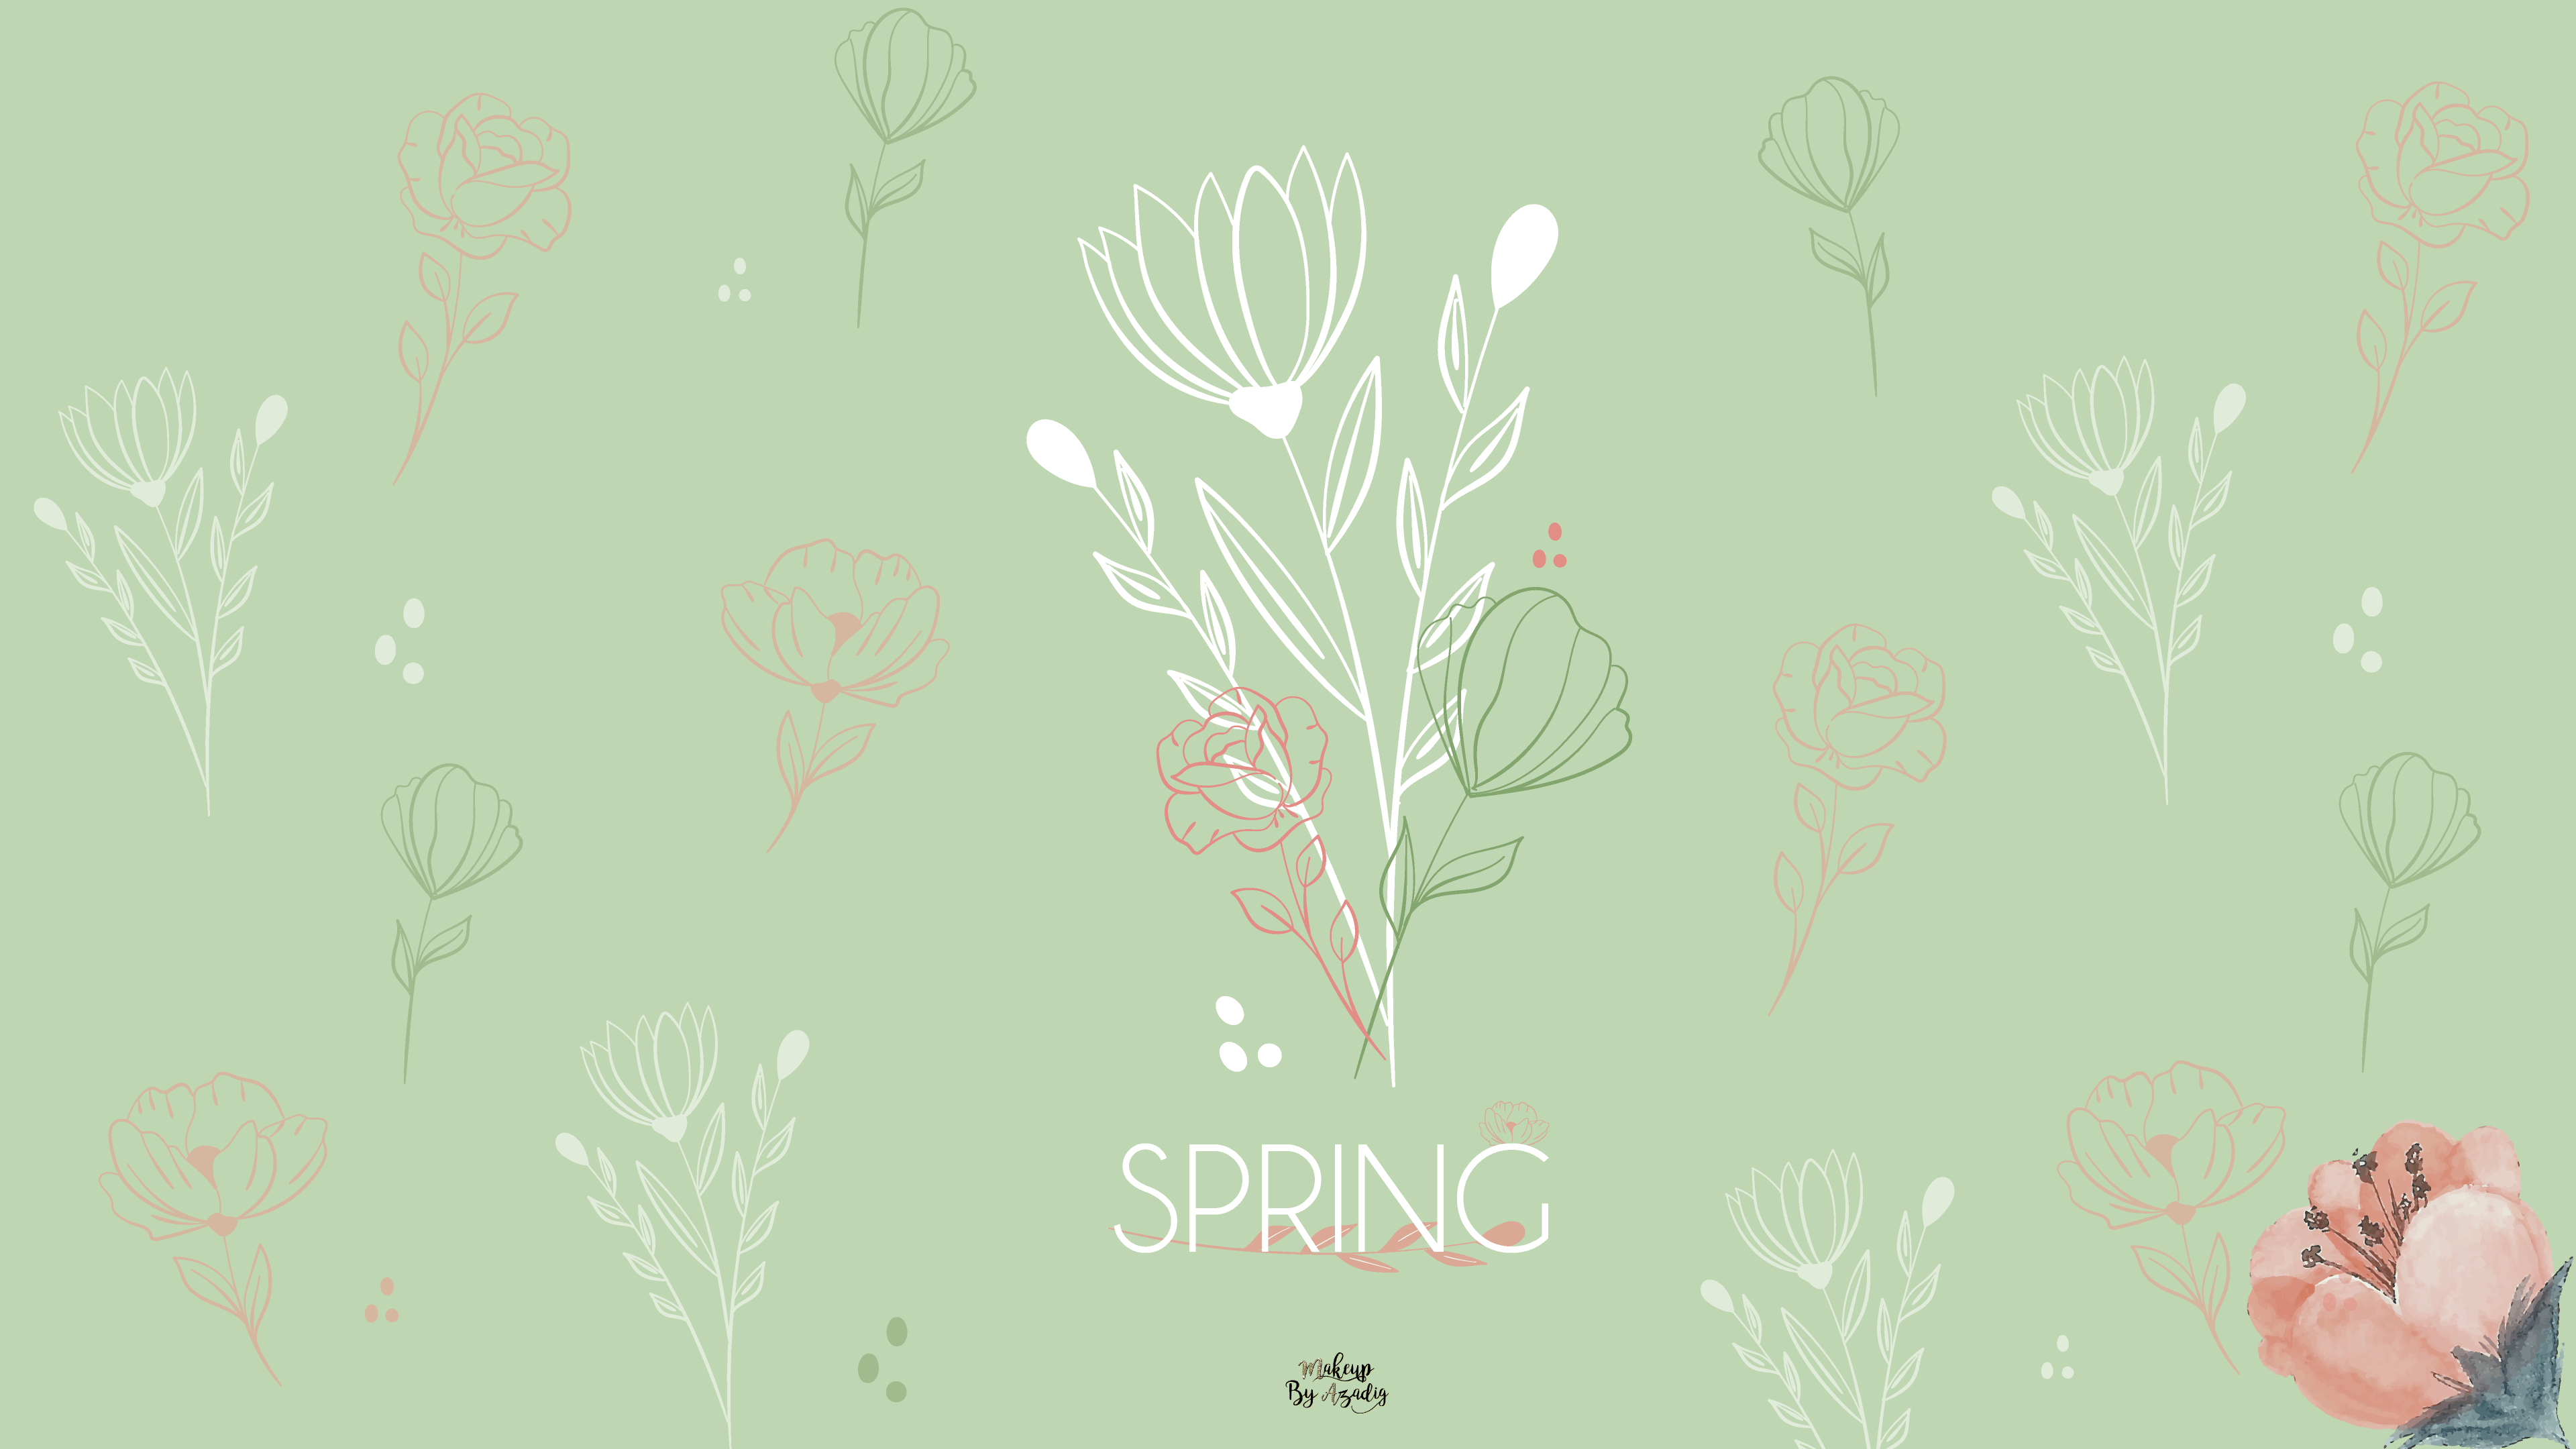 fond-decran-wallpaper-printemps-fleurs-bouquet-spring-girly-ordinateur-mac-macbook-imac-pc-makeupbyazadig-tendance